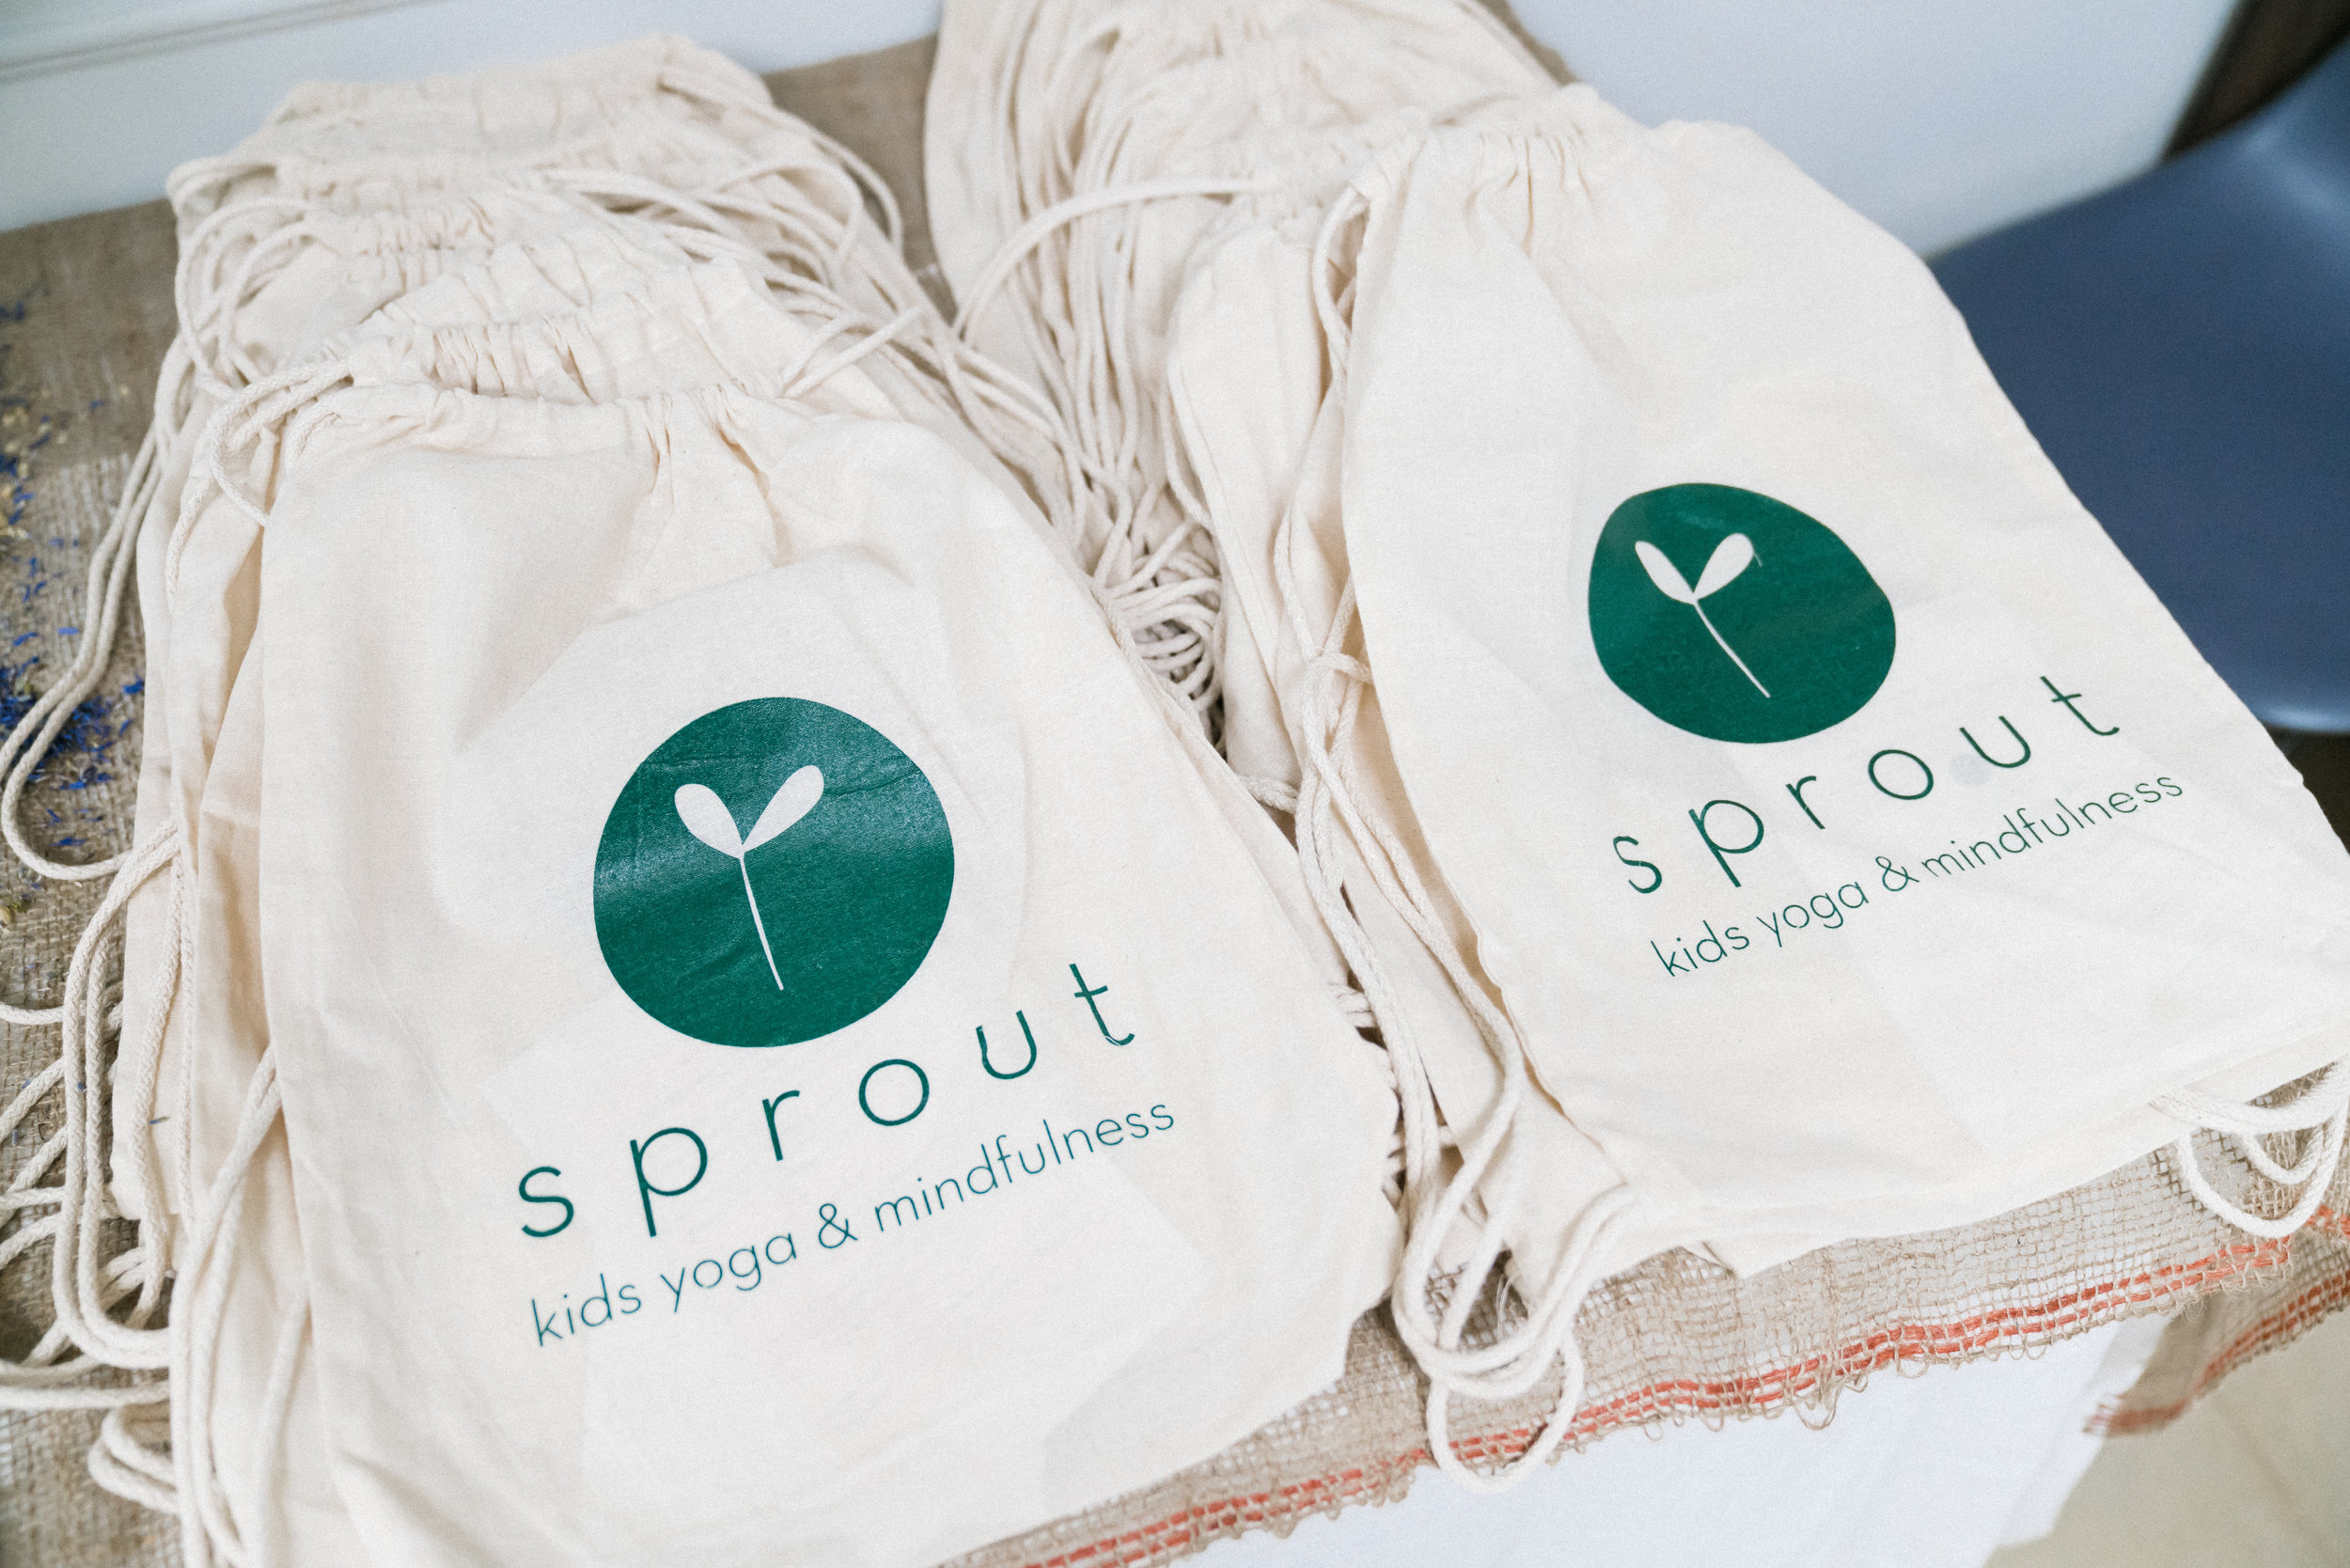 2018_09_01_SPROUT-2.jpg